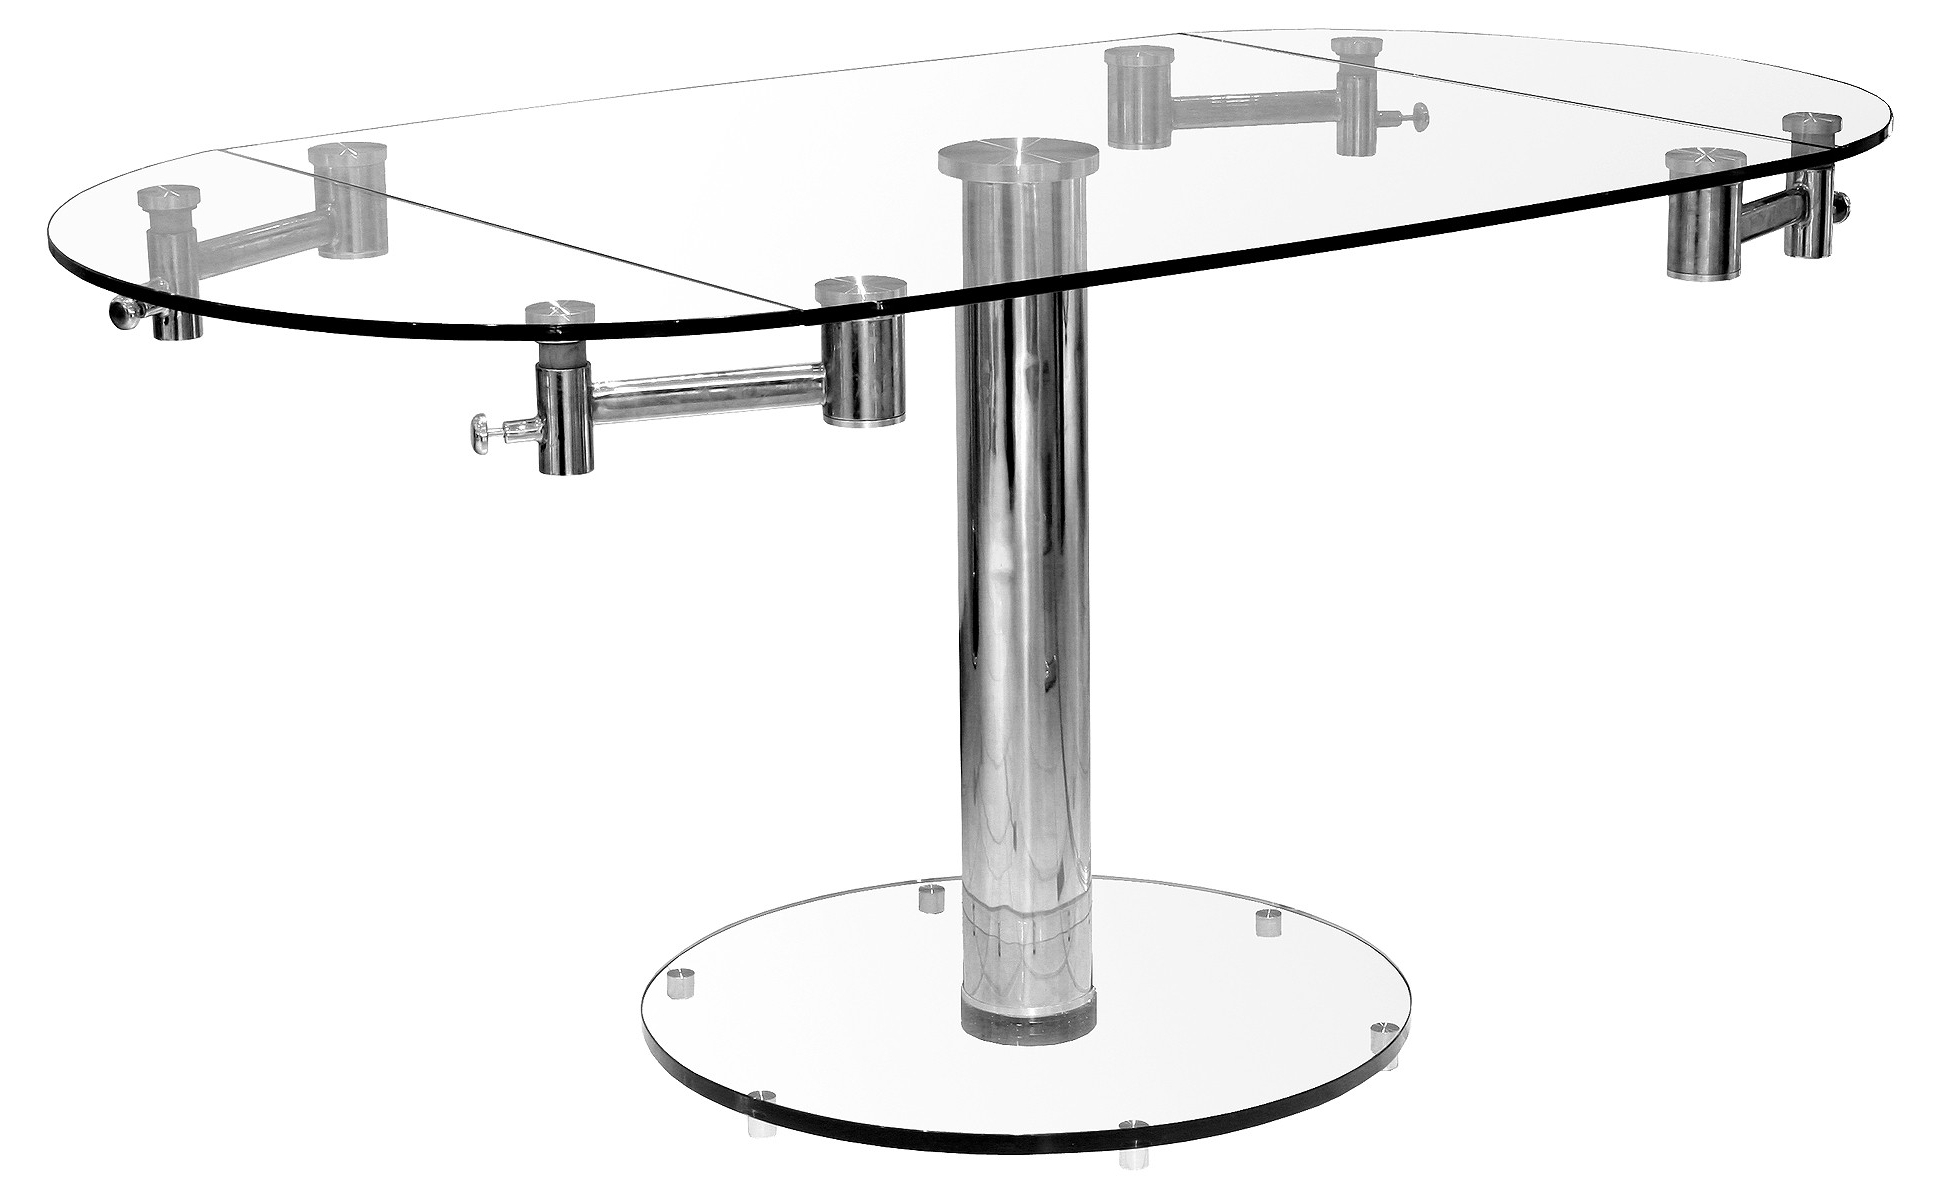 Trendy Oval Glass Extending Dining Table – Fw698 – Be Fabulous! Inside White Square Extending Dining Tables (View 19 of 25)